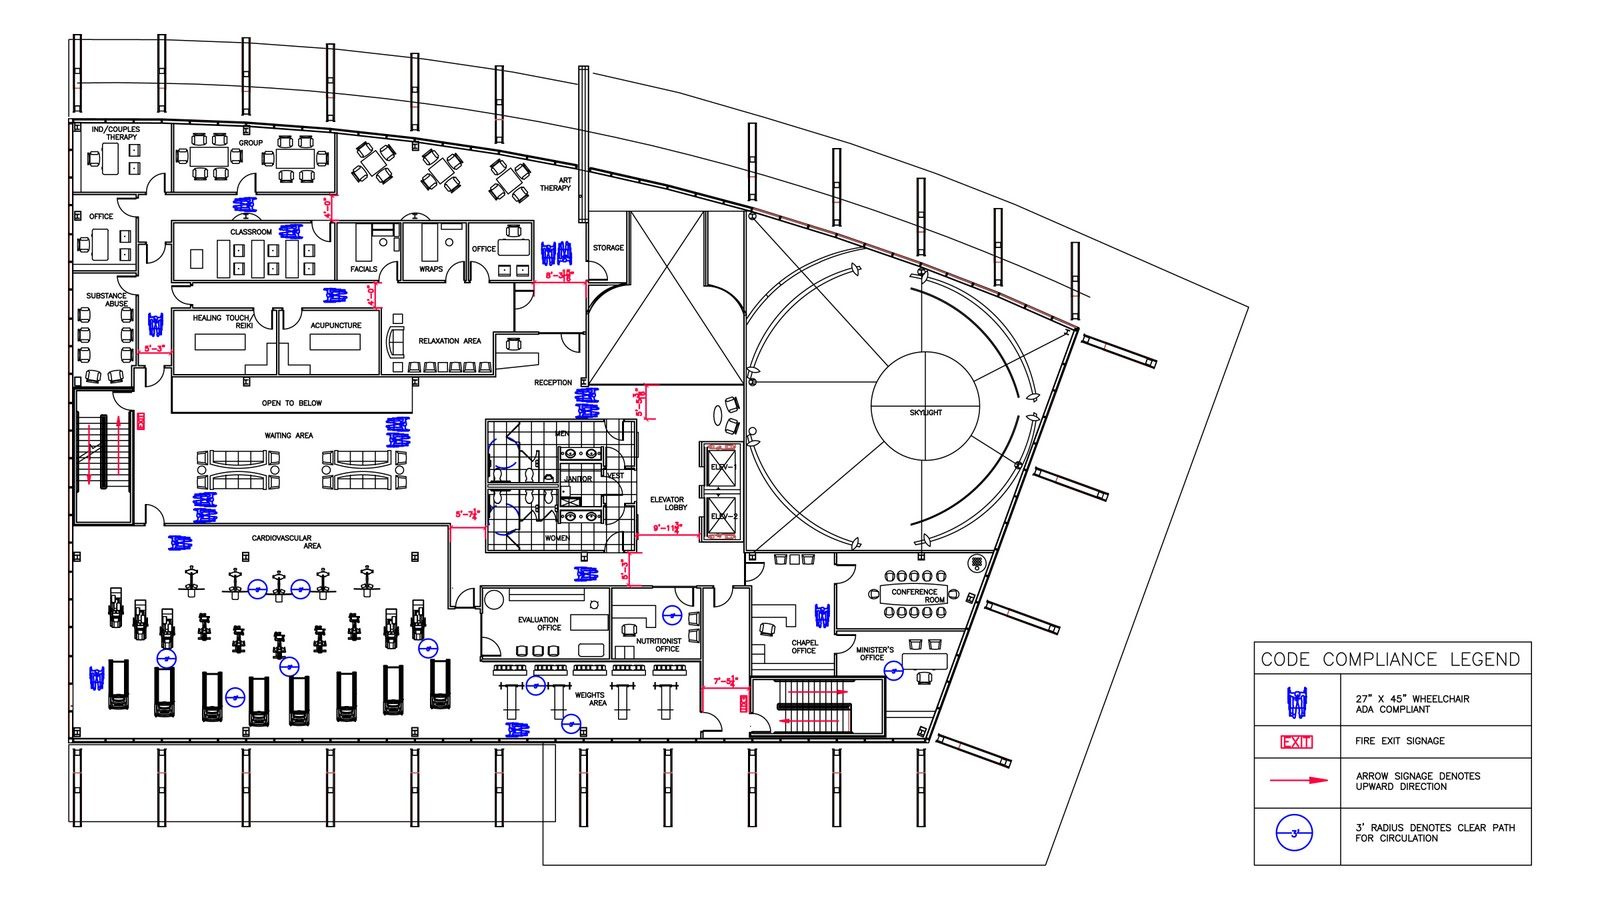 Greensphere Wellness Center Code Compliance Diagrams